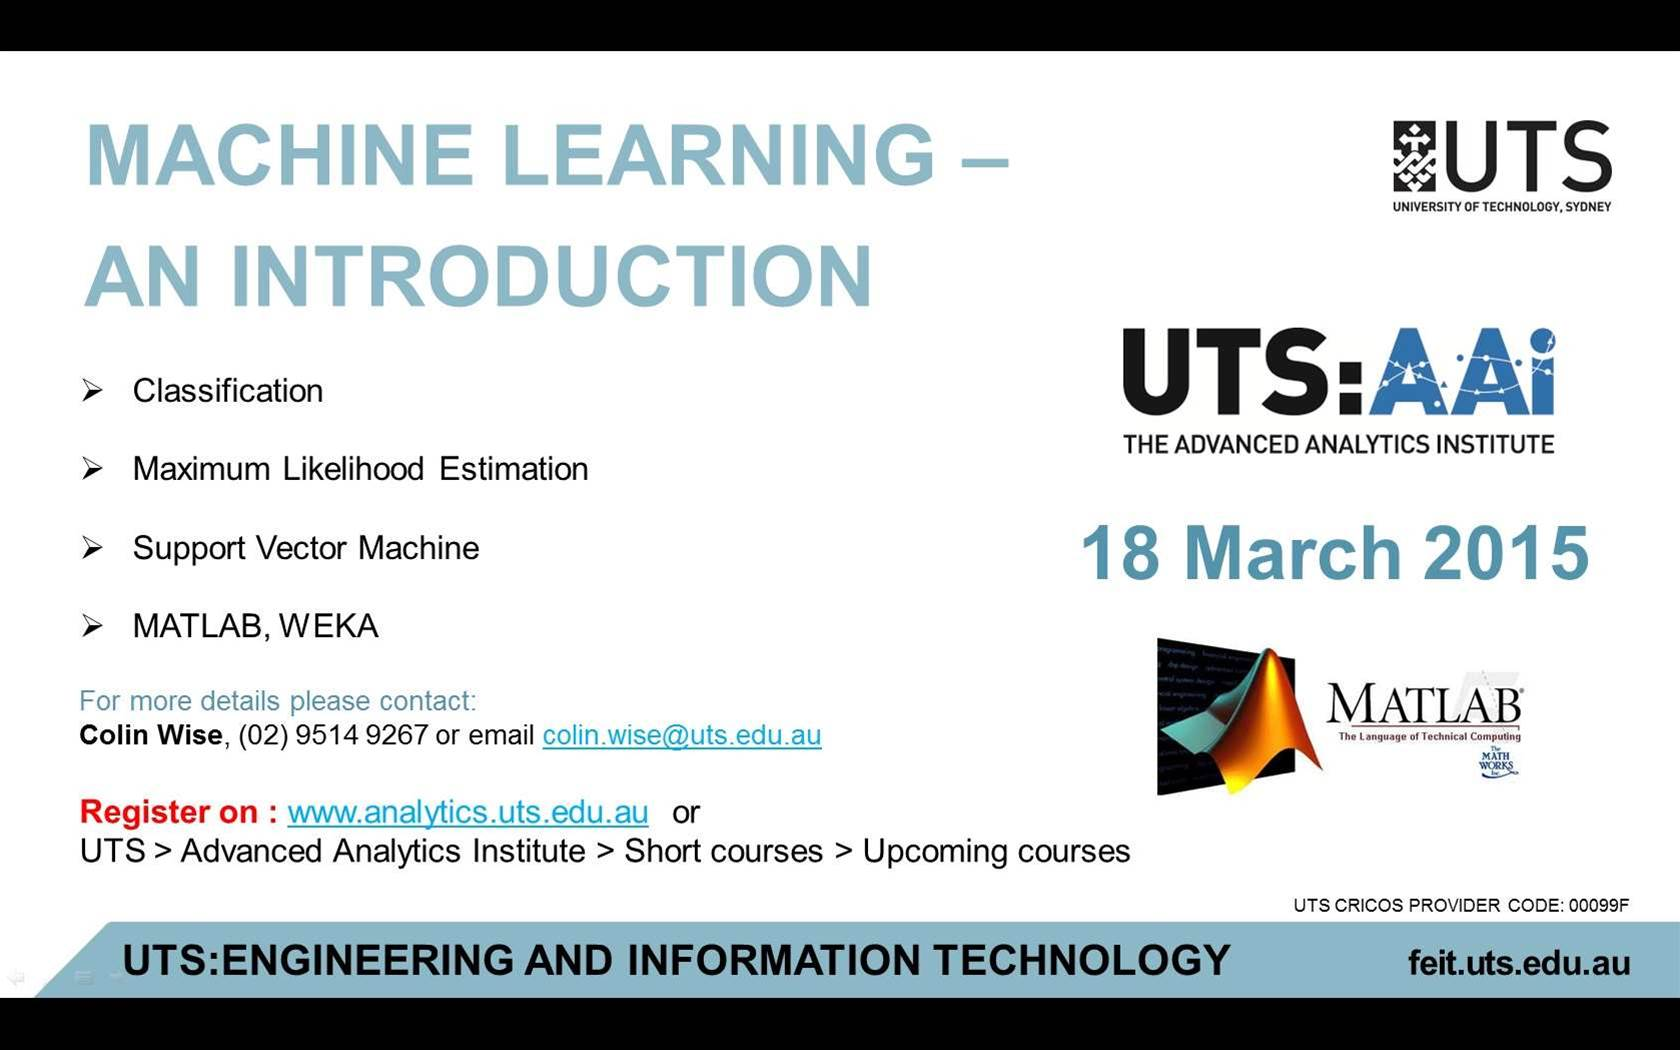 Machine Learning - an Introduction 18 March 2015